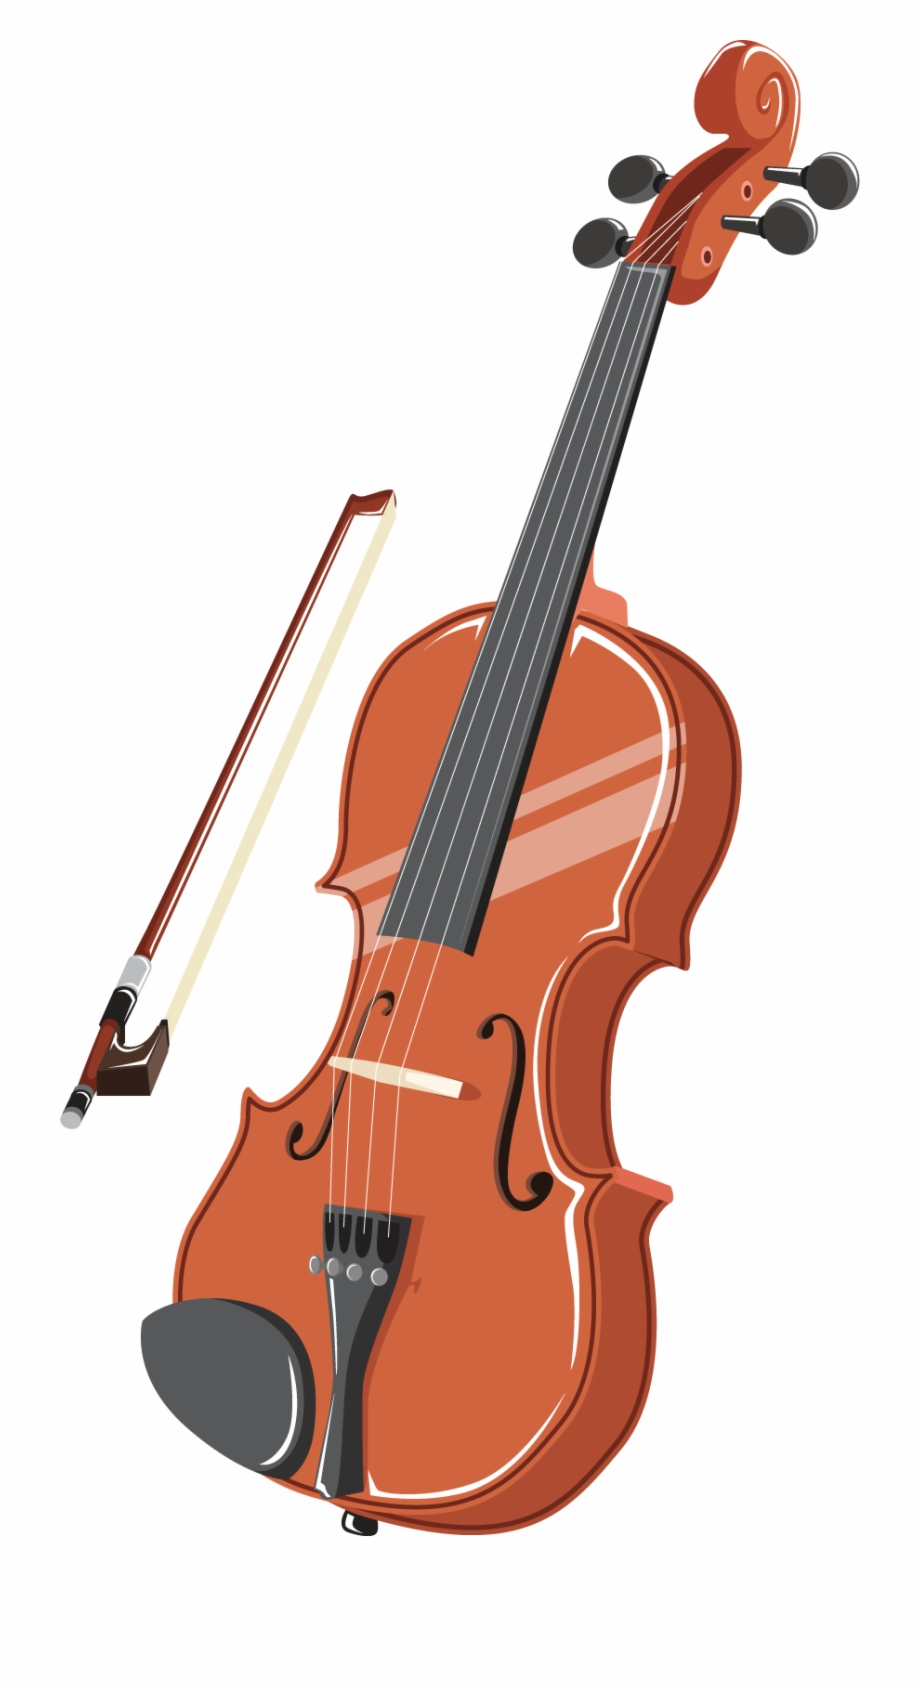 Violin clipart png stock Violin Clipart Png Image - Clipart Images For Violin ... stock